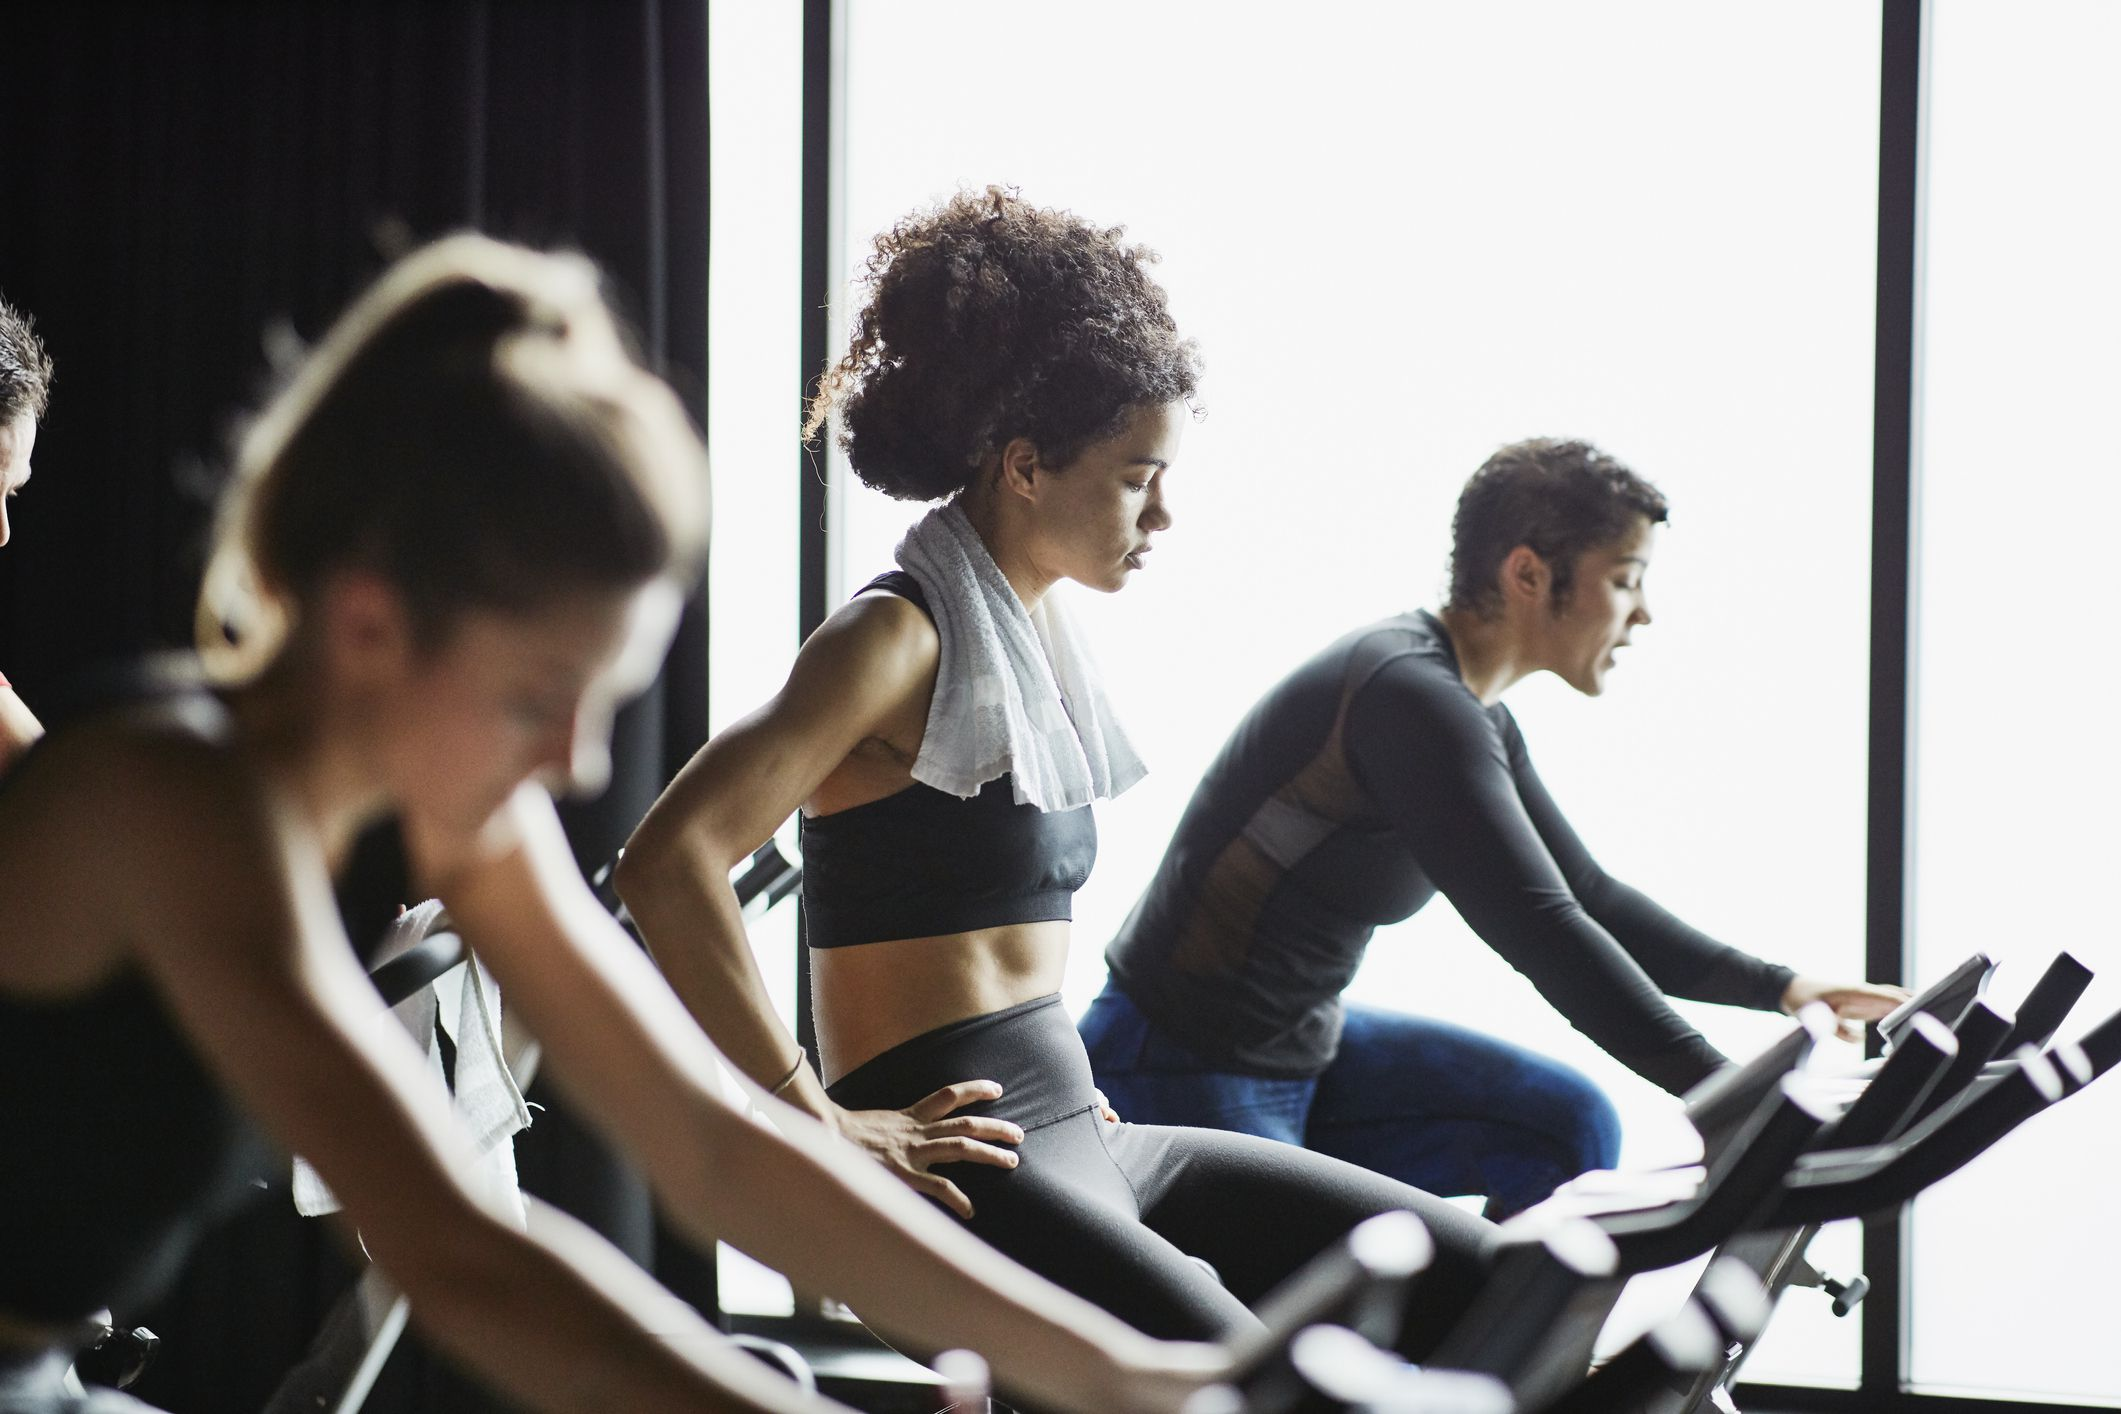 Coronavirus and Gyms: Should You Work Out During a Pandemic?